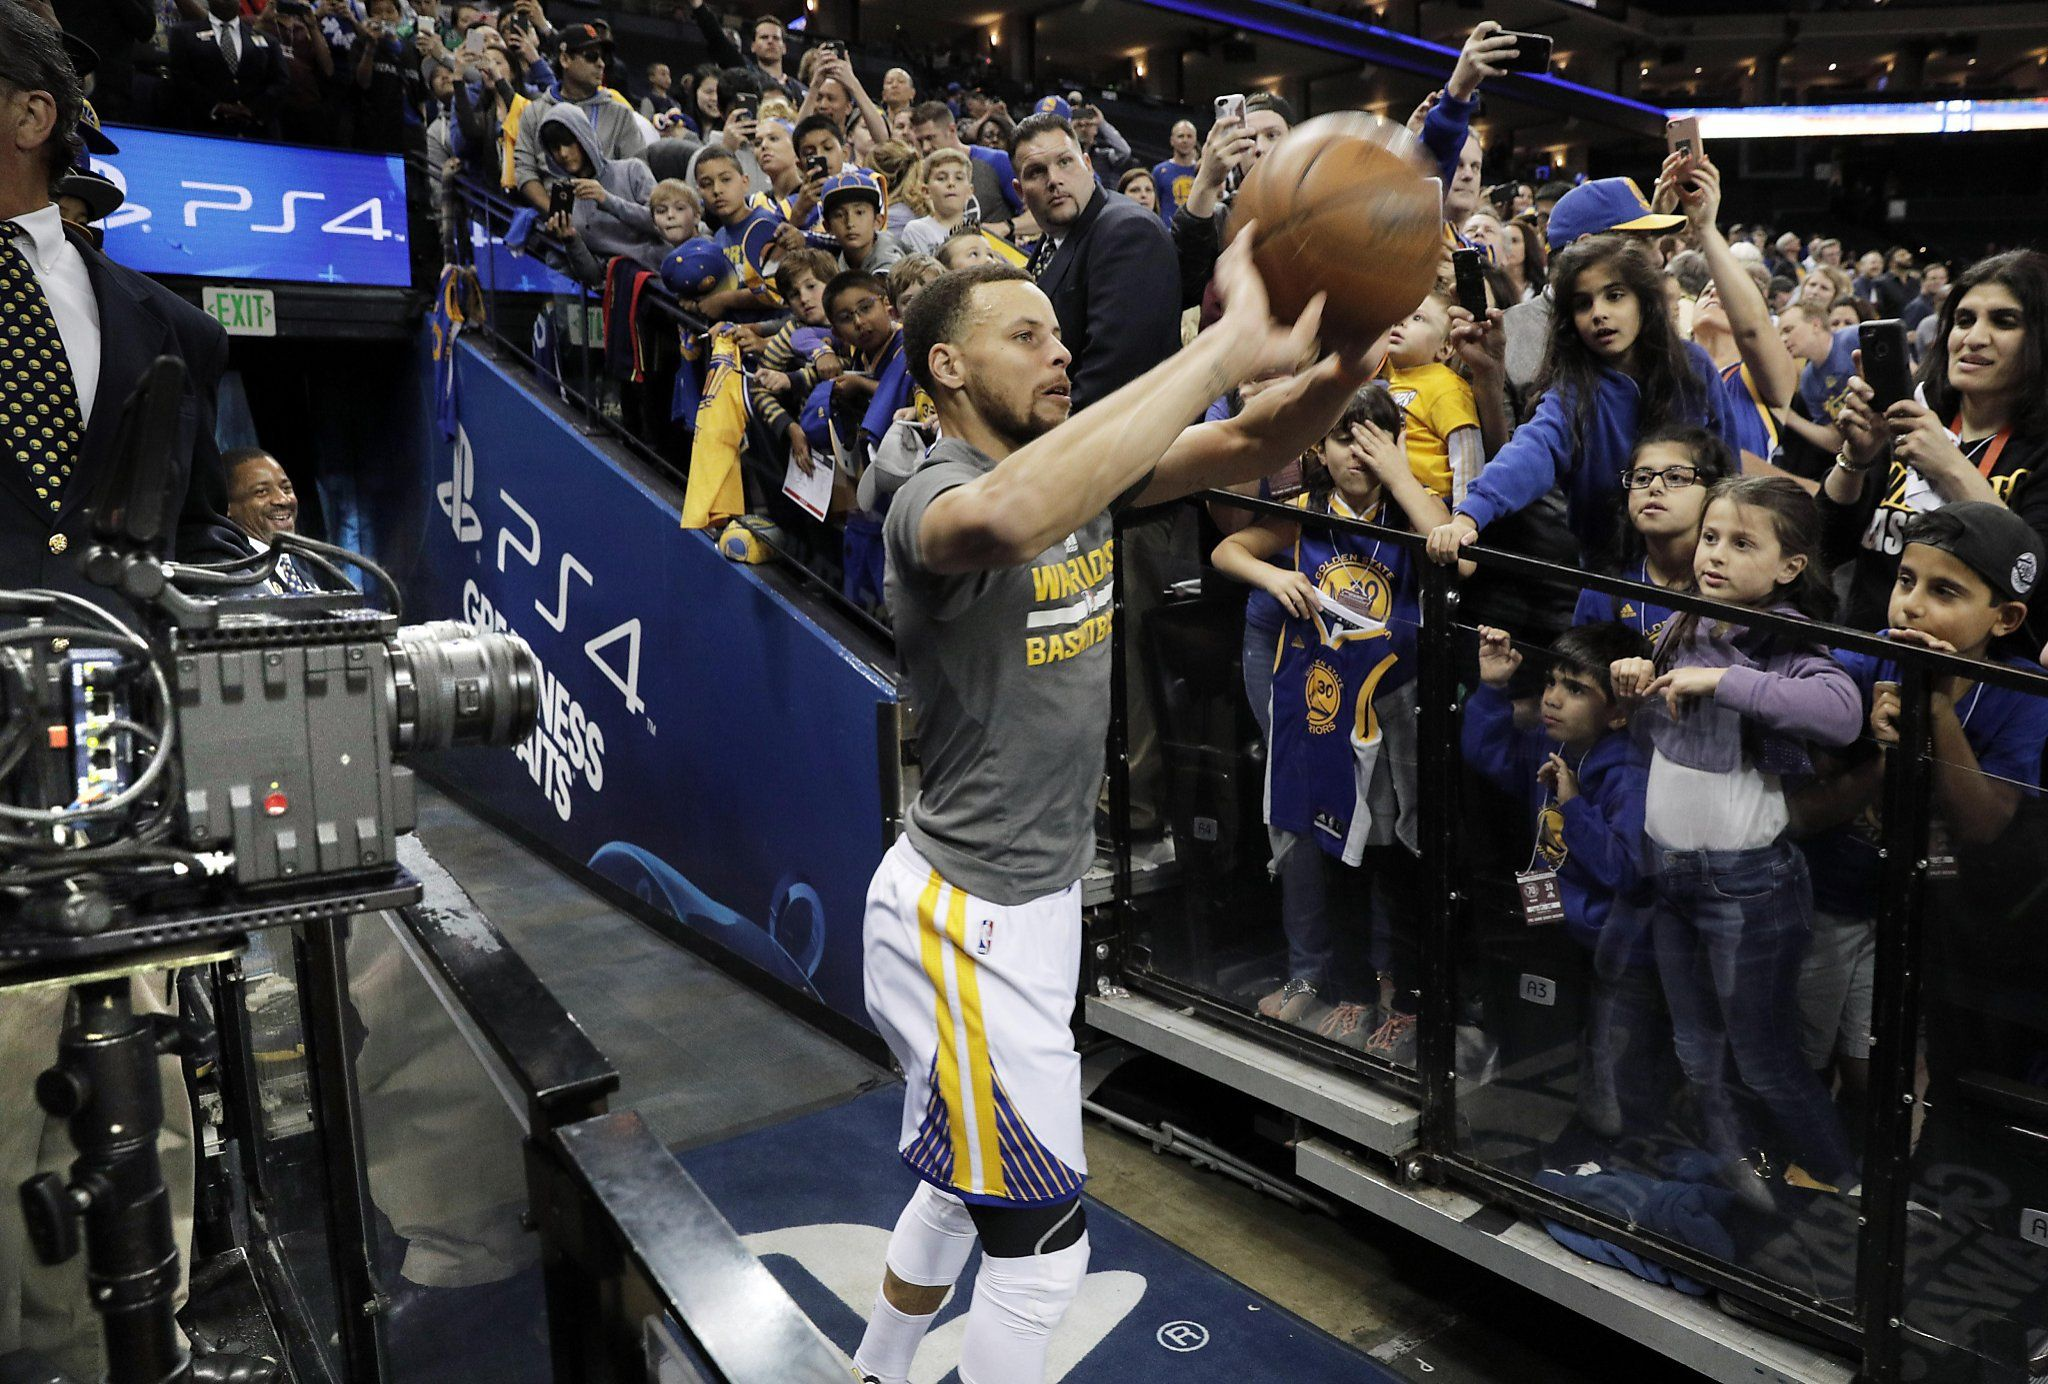 Virtual reality basketball could be future of sports